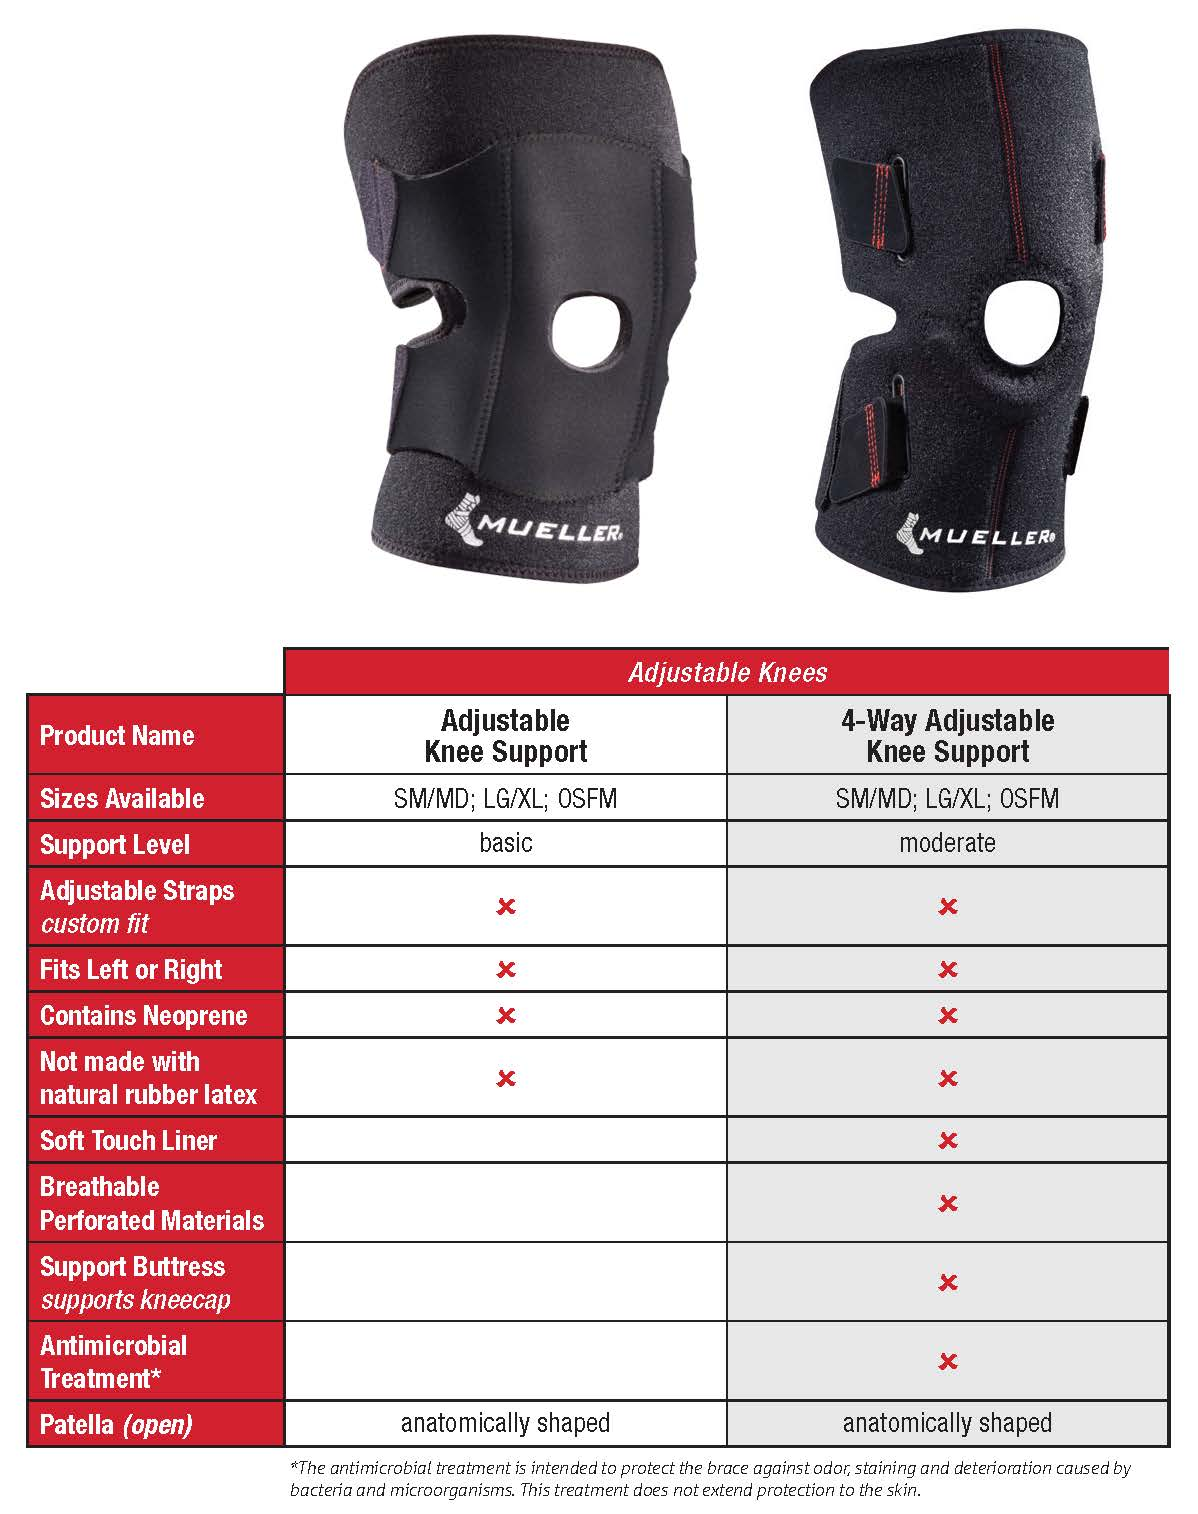 Adjustable Knee Support Comparison Chart